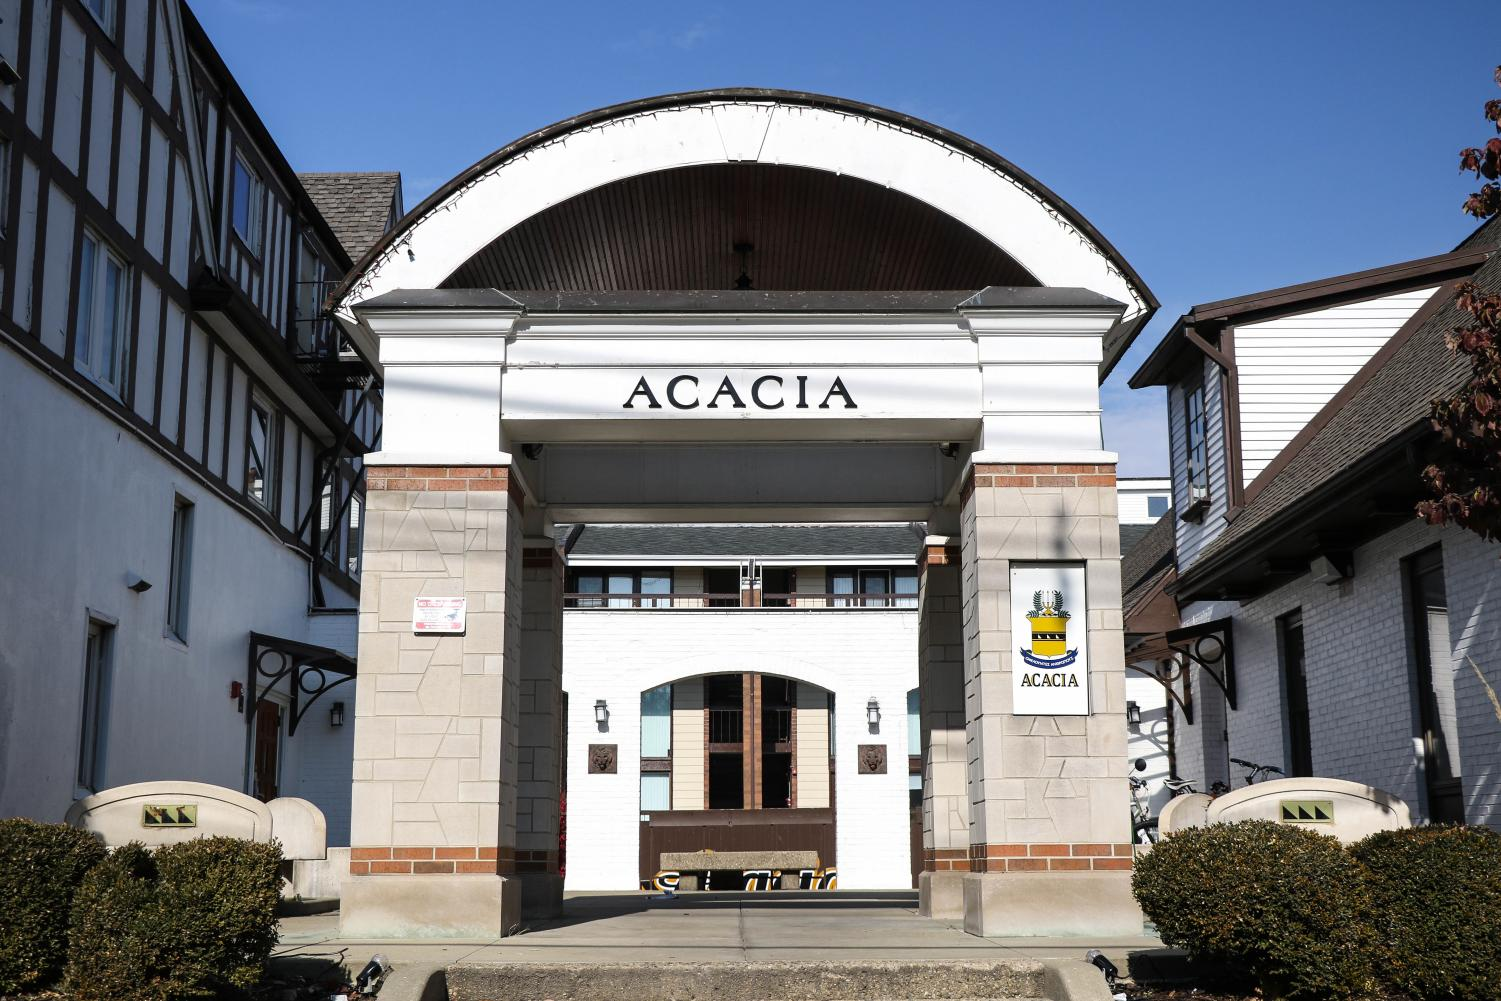 The Acacia Fraternity house is shown at 302 E. Armory Ave. on Sunday. The fraternity recently took responsibility for a string of stolen decorations across the Champaign-Urbana area.